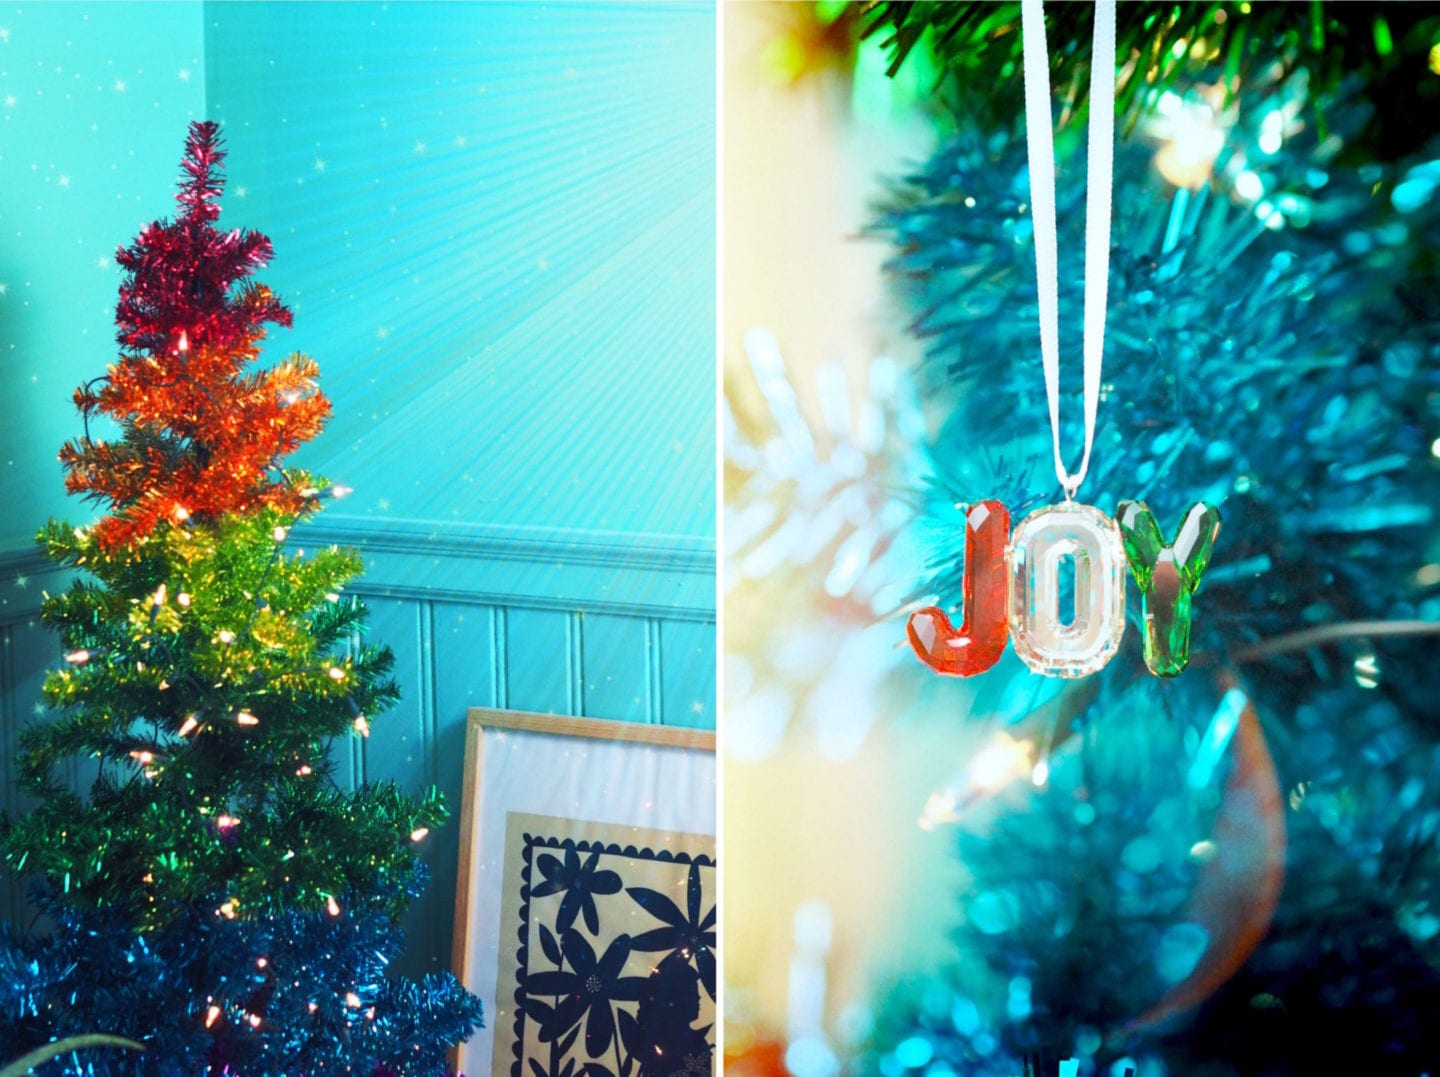 swarovski-joy-christmas-tree-decoration-xmas-crystal-paperchase-rainbow-tree